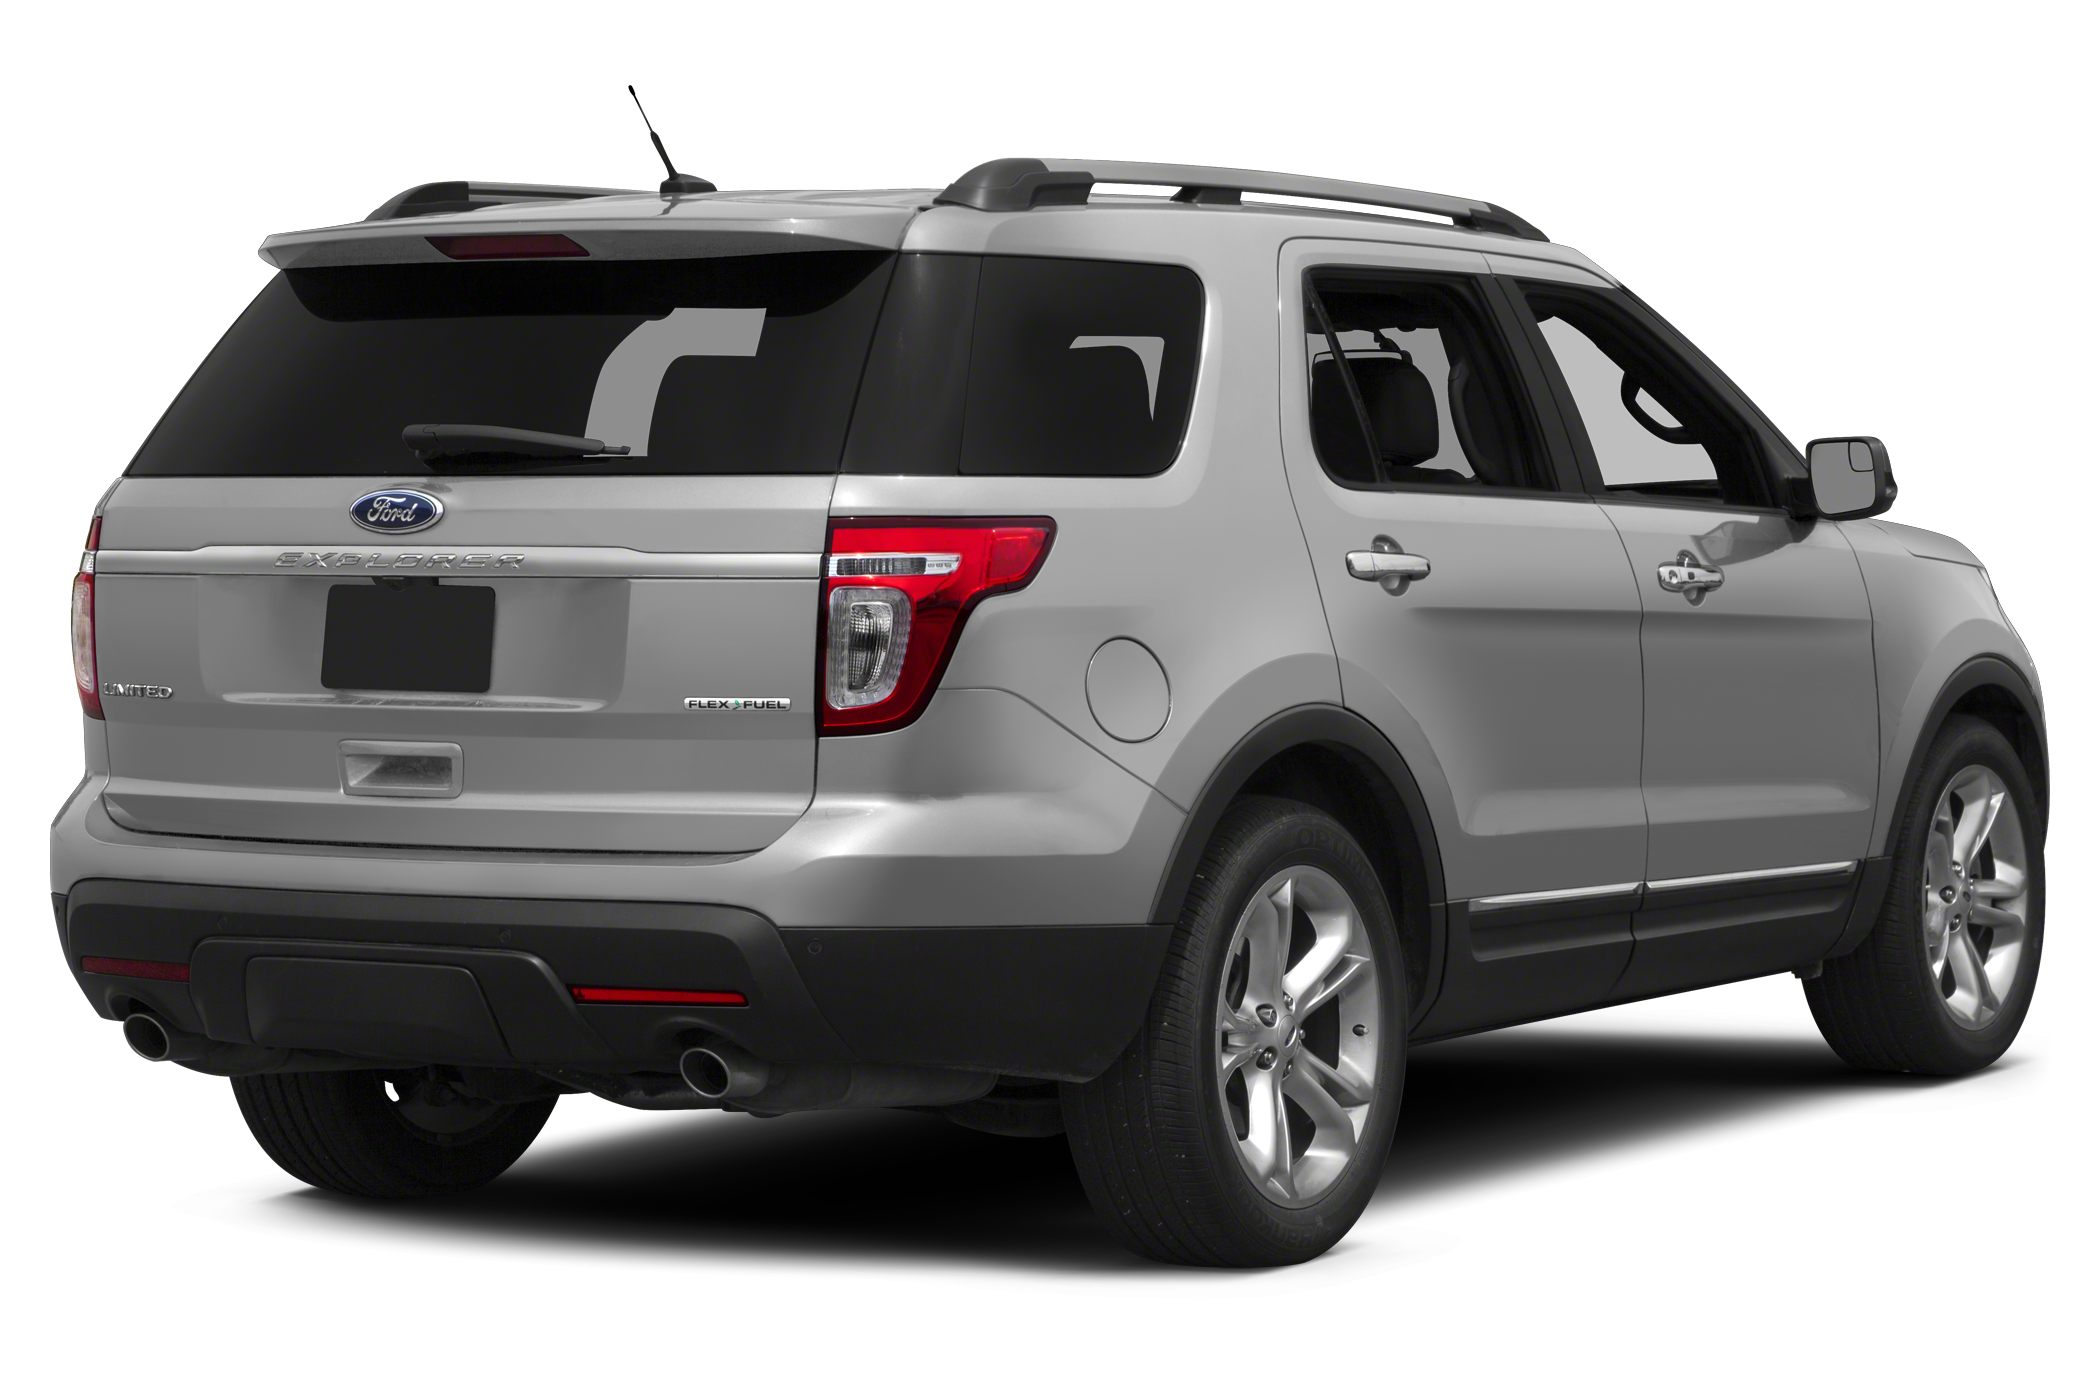 2015 Ford Explorer Color Chart >> See 2015 Ford Explorer Color Options Carsdirect